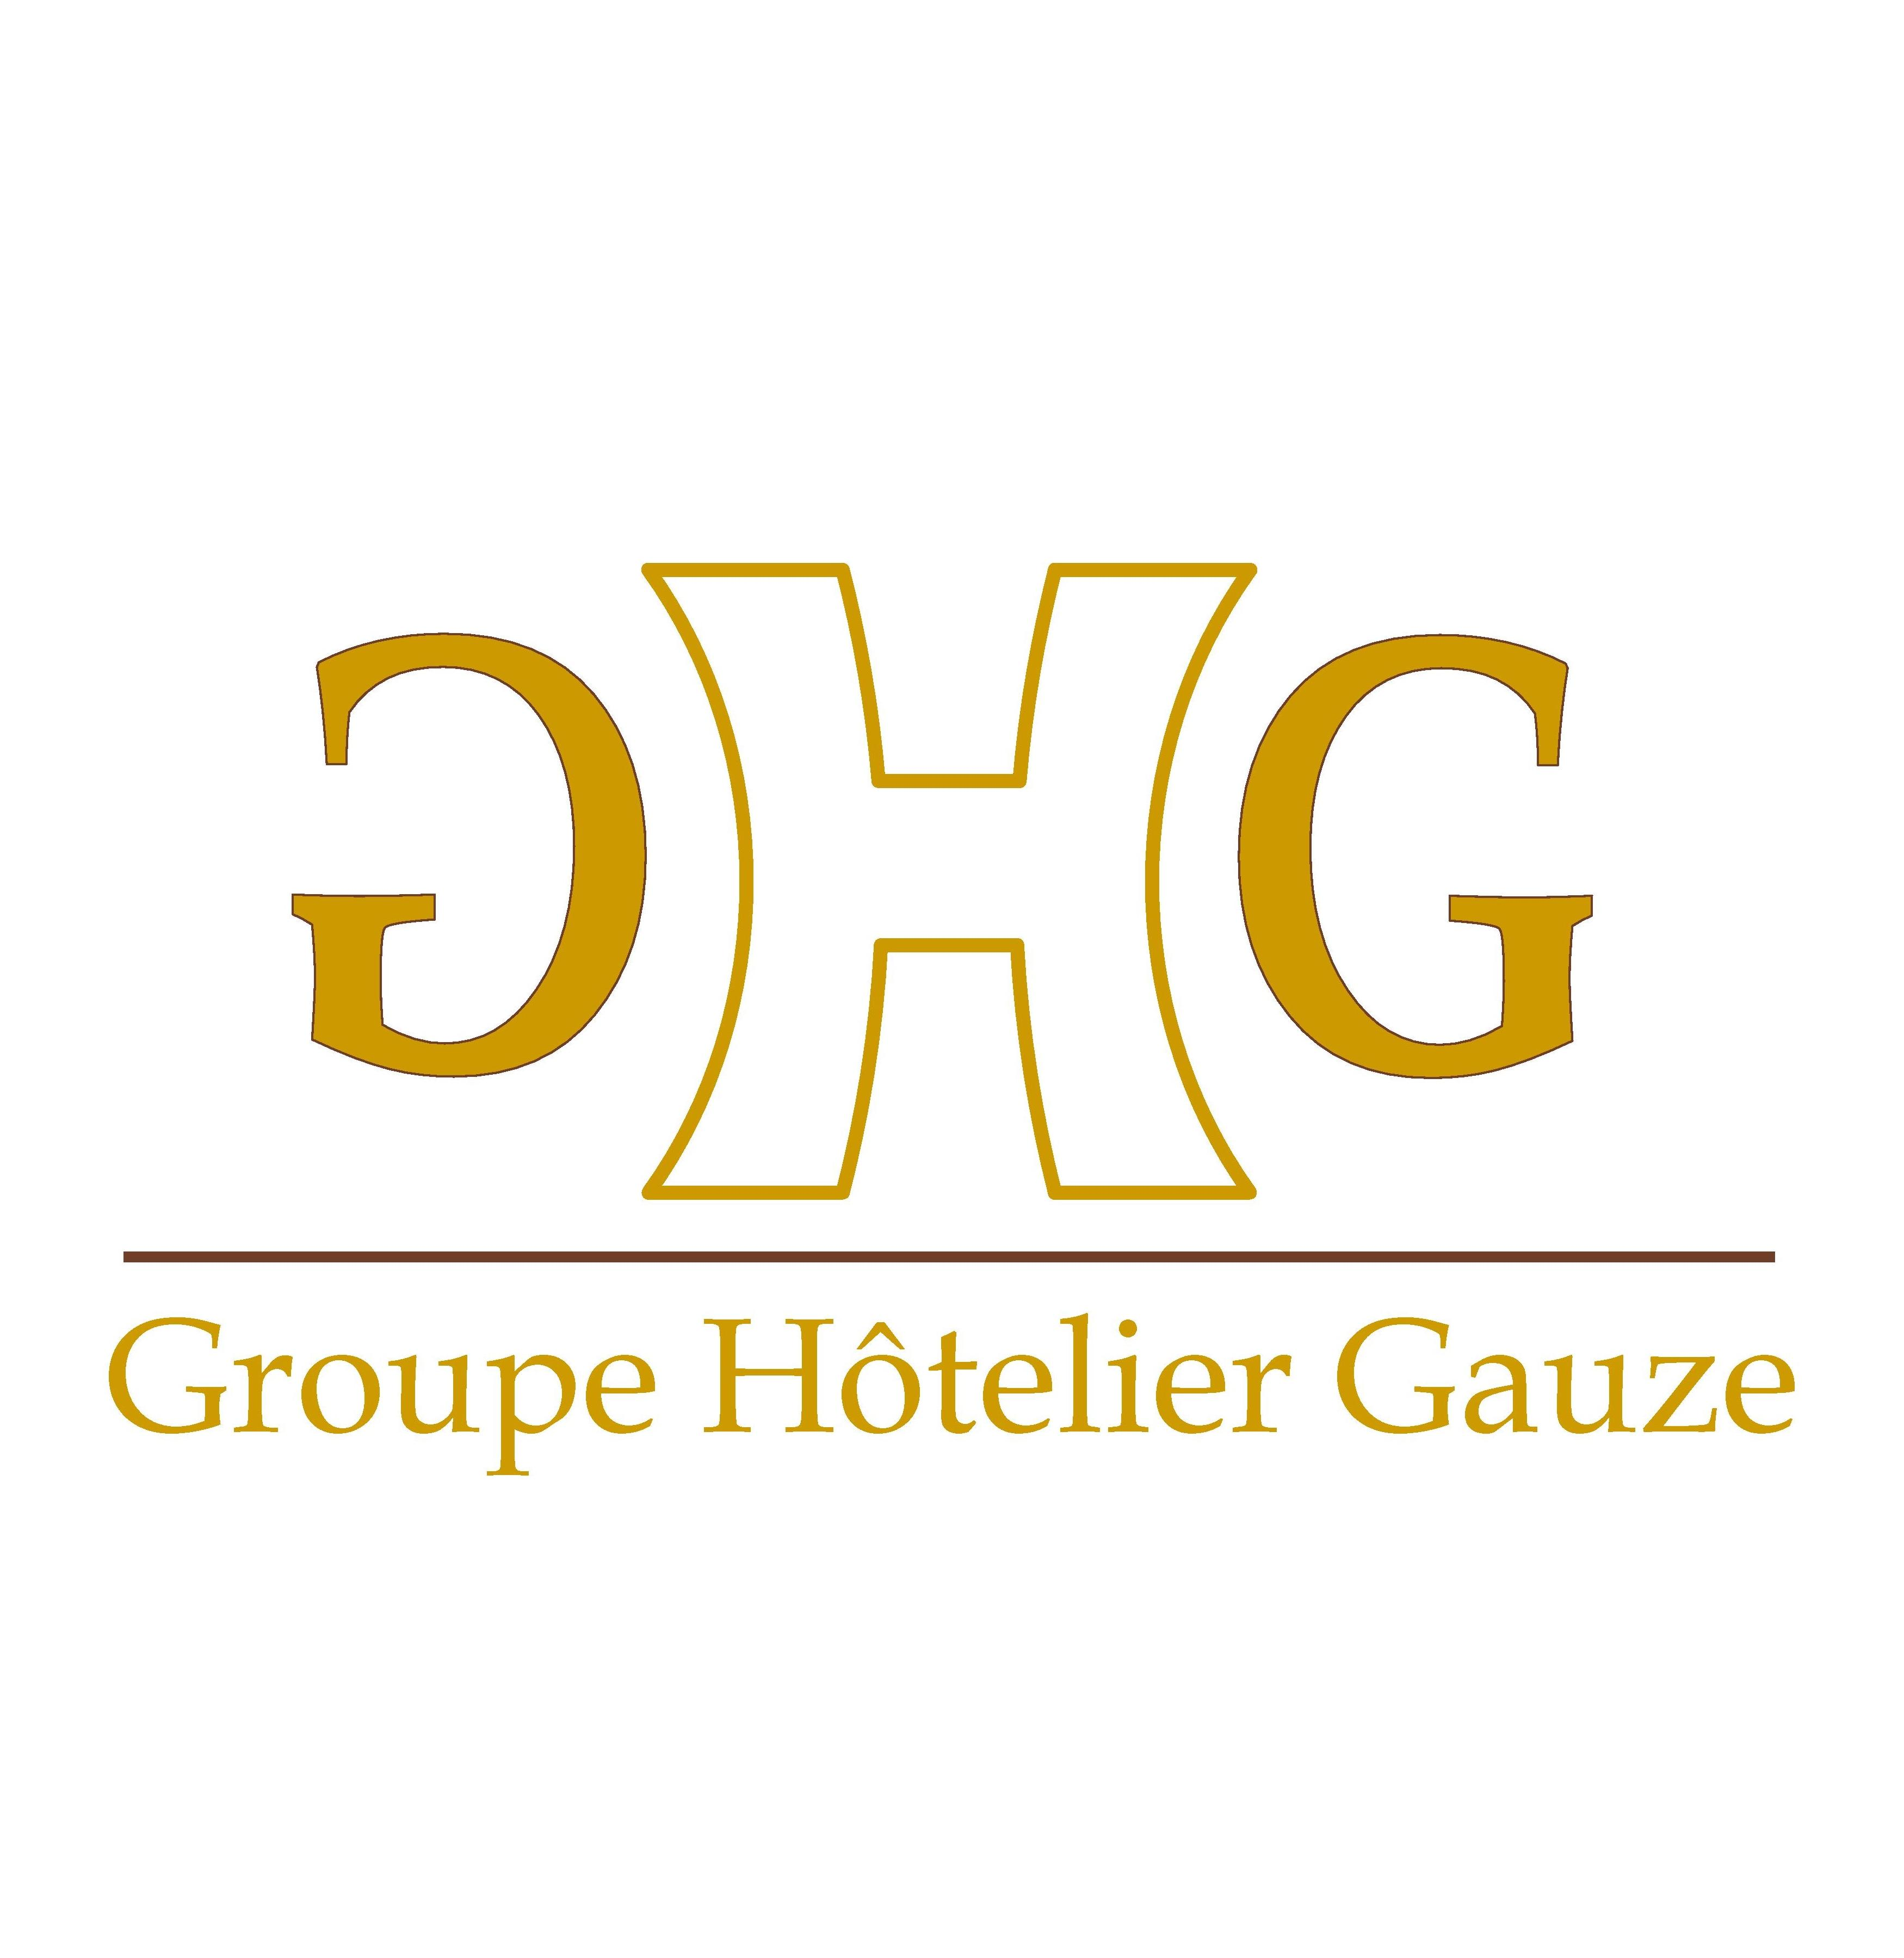 Groupe h telier gauze for Groupe hotelier